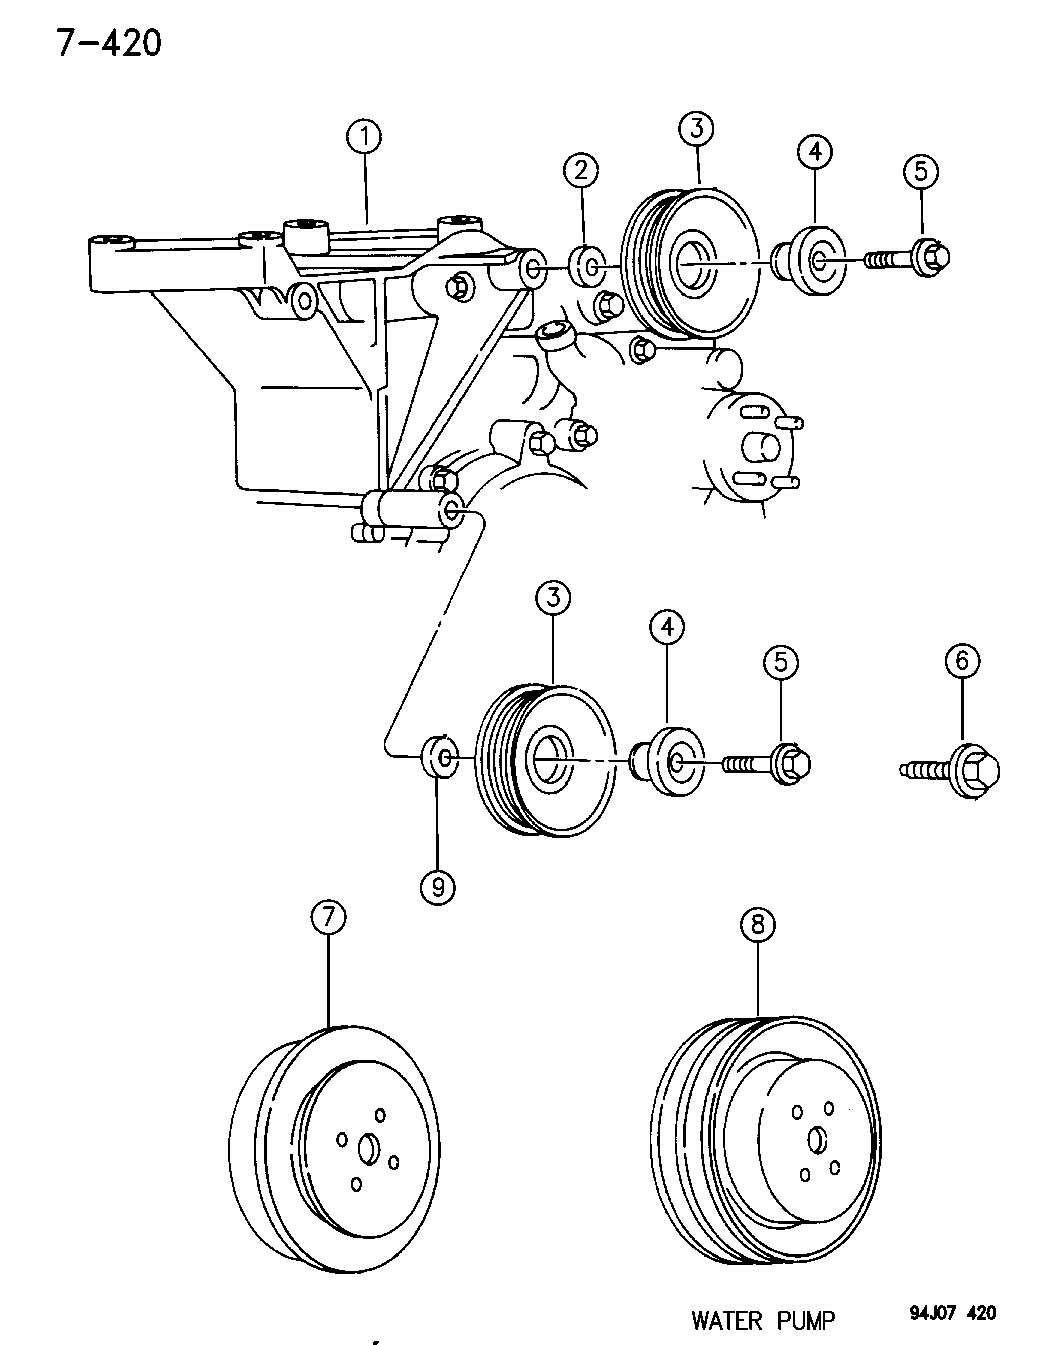 1995 Jeep Wrangler Pulley, pulley assembly, idler, pulley